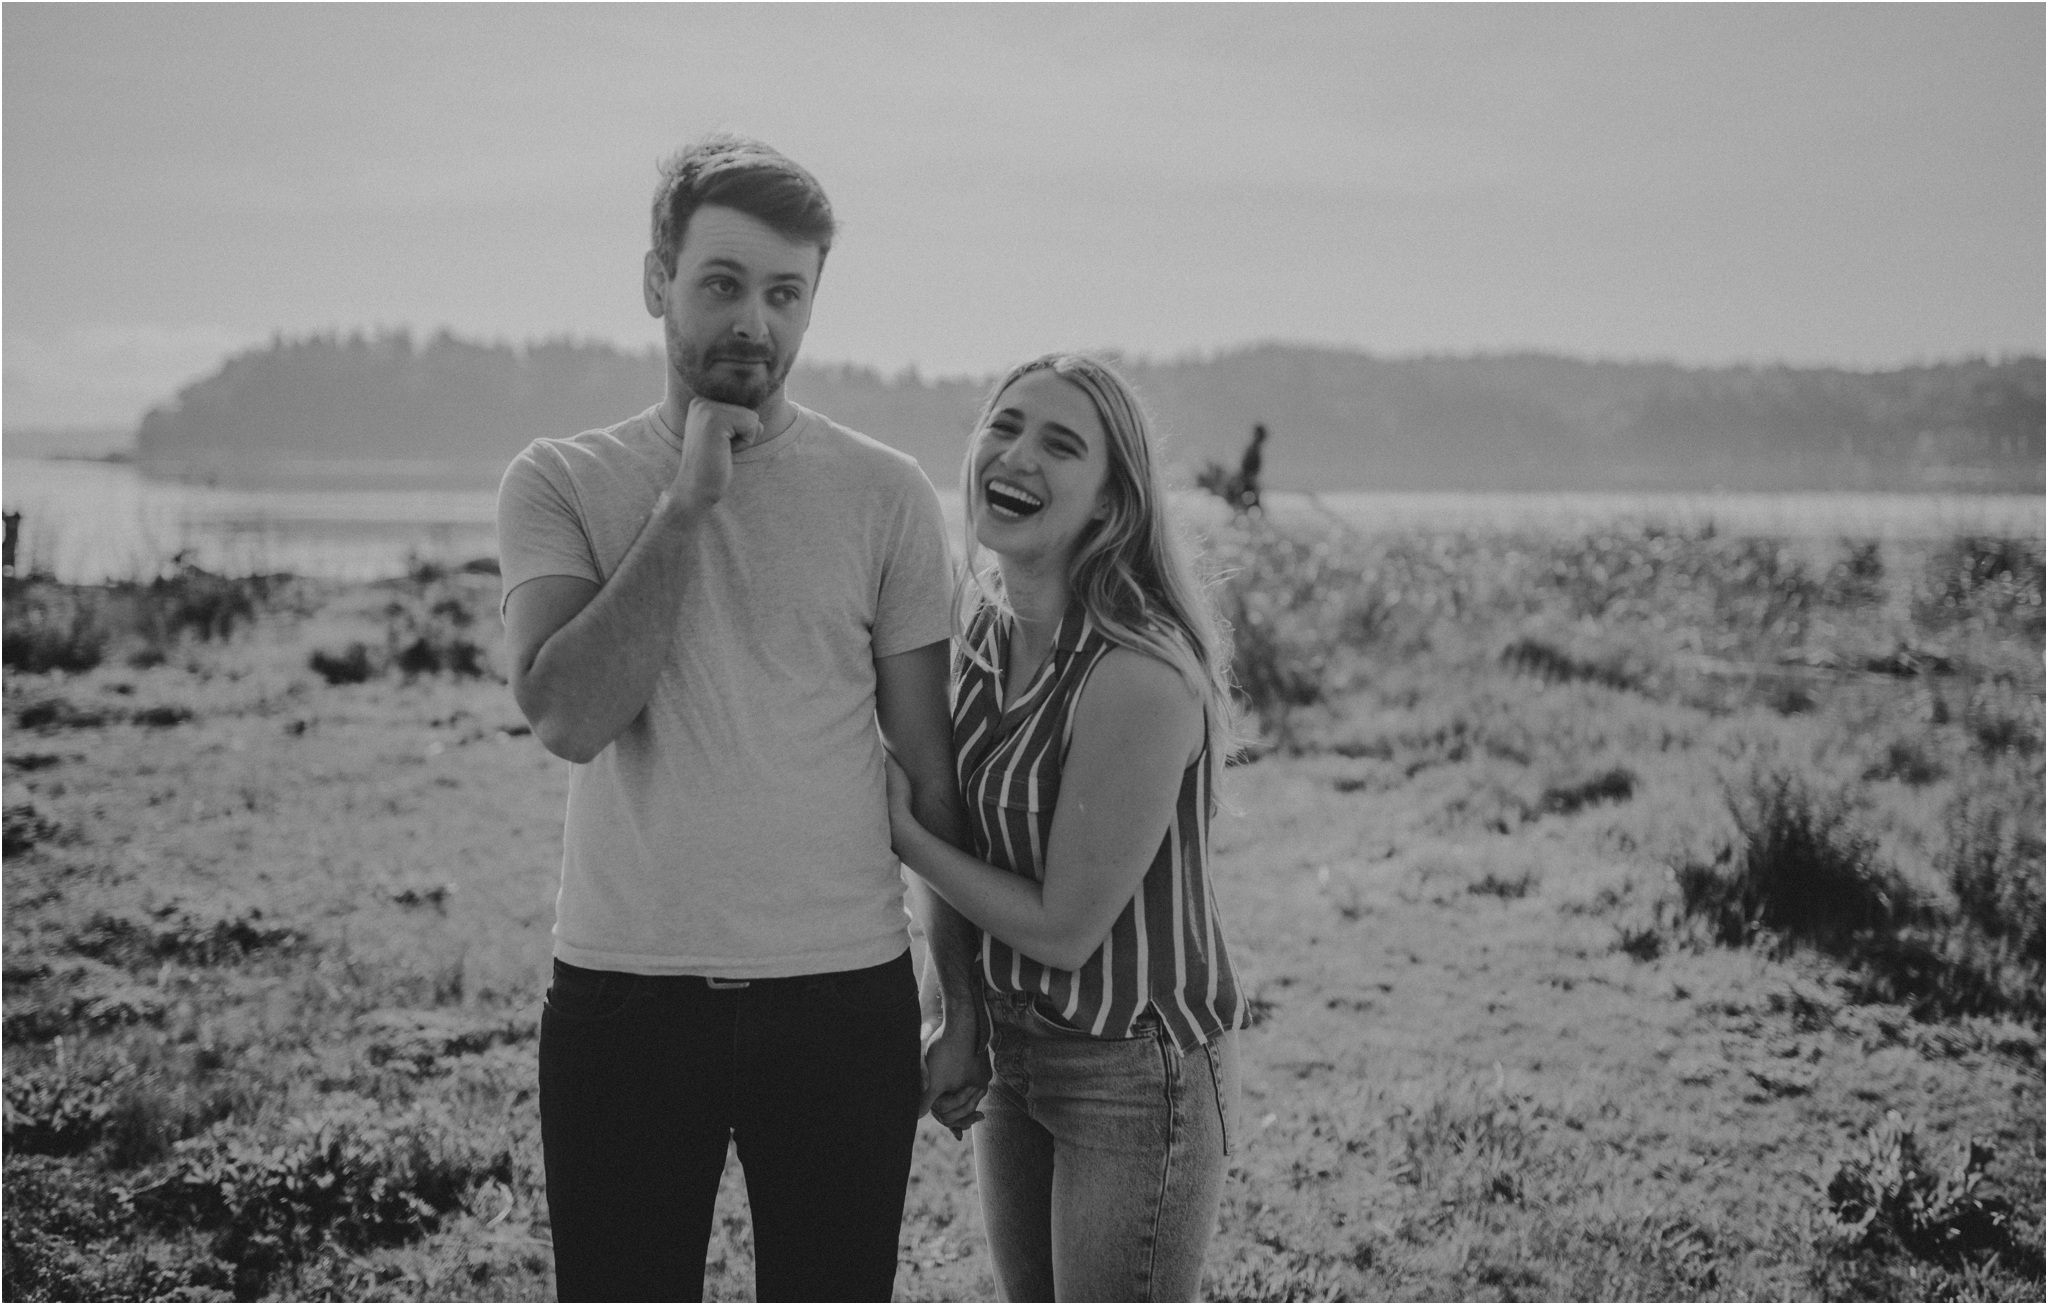 rile-and-ryan-fauntleroy-ferry-vashon-island-seattle-engagement-session-029.jpg